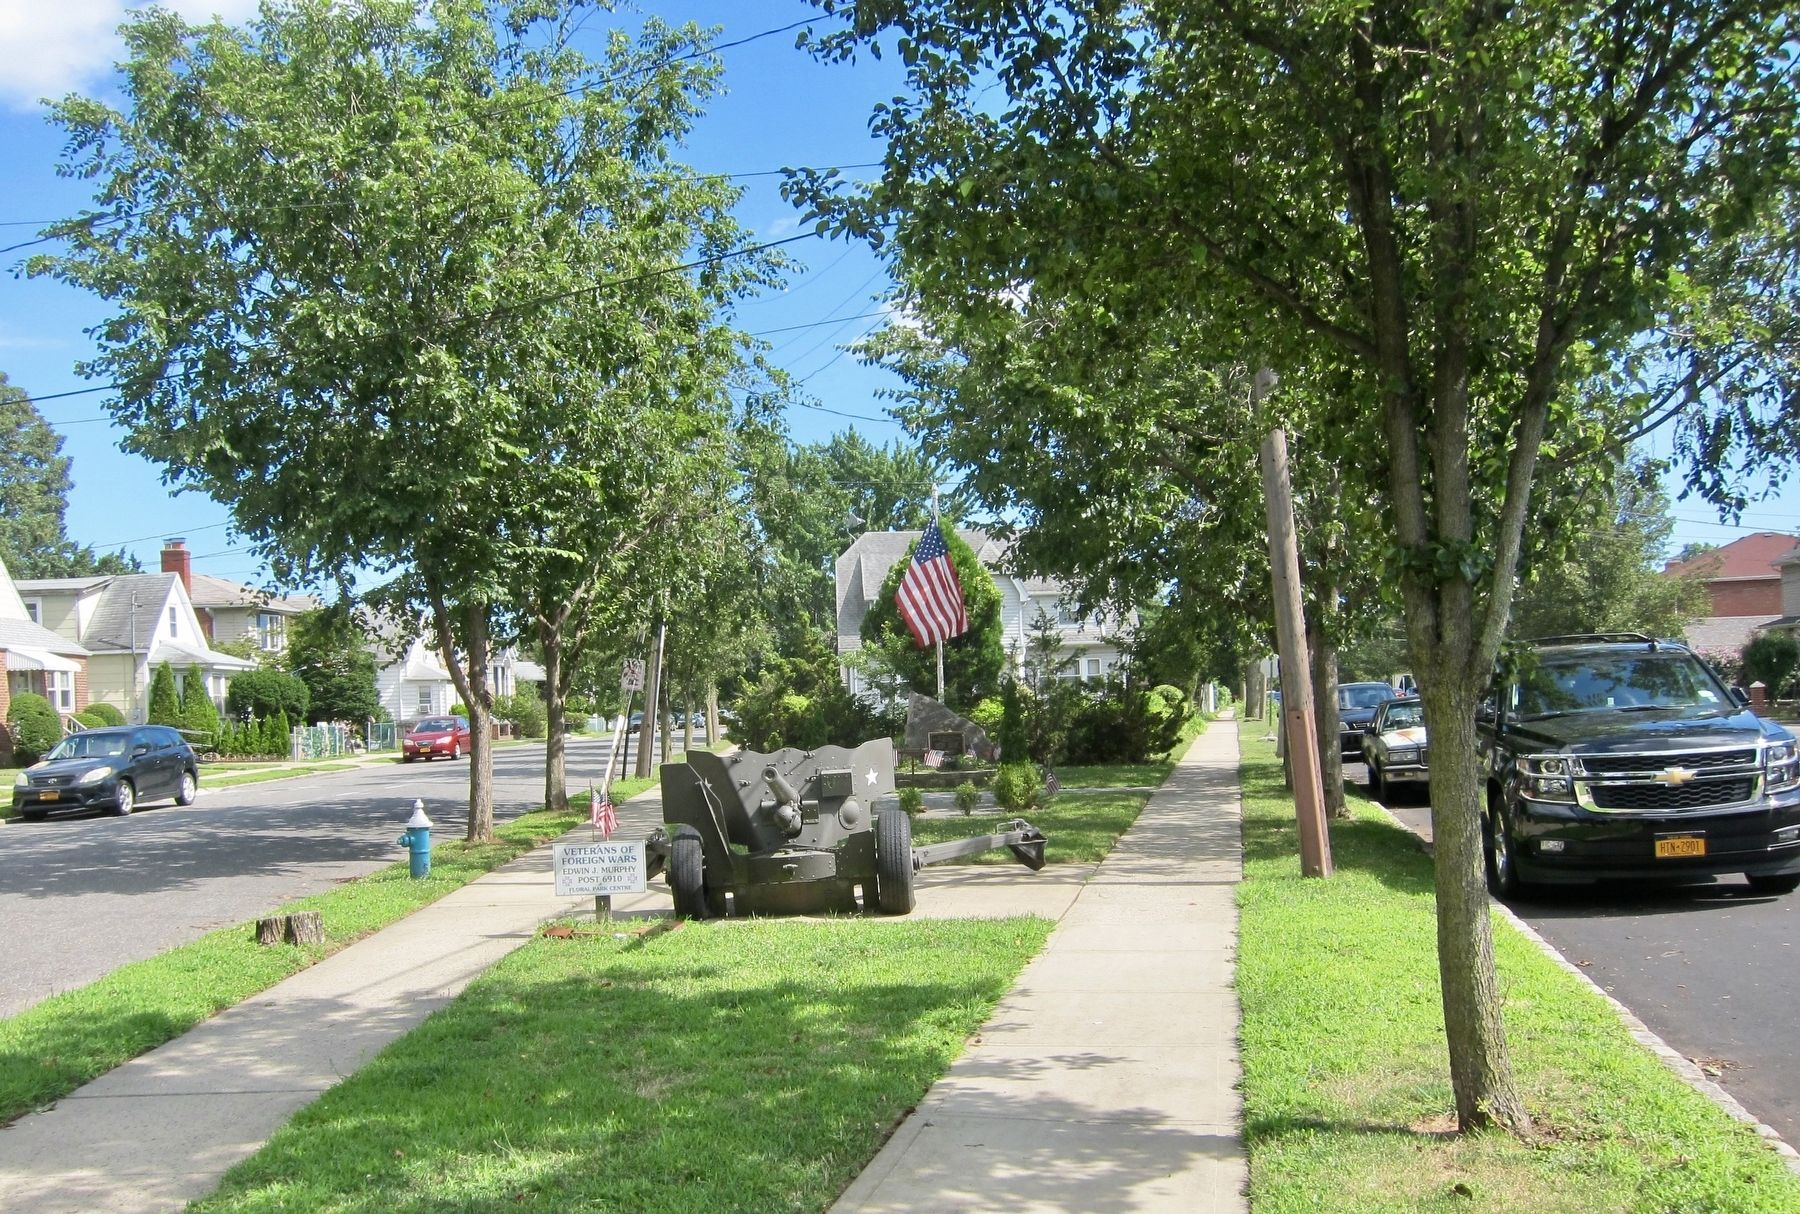 Floral Park World War II Memorial Marker - Wide View image. Click for full size.